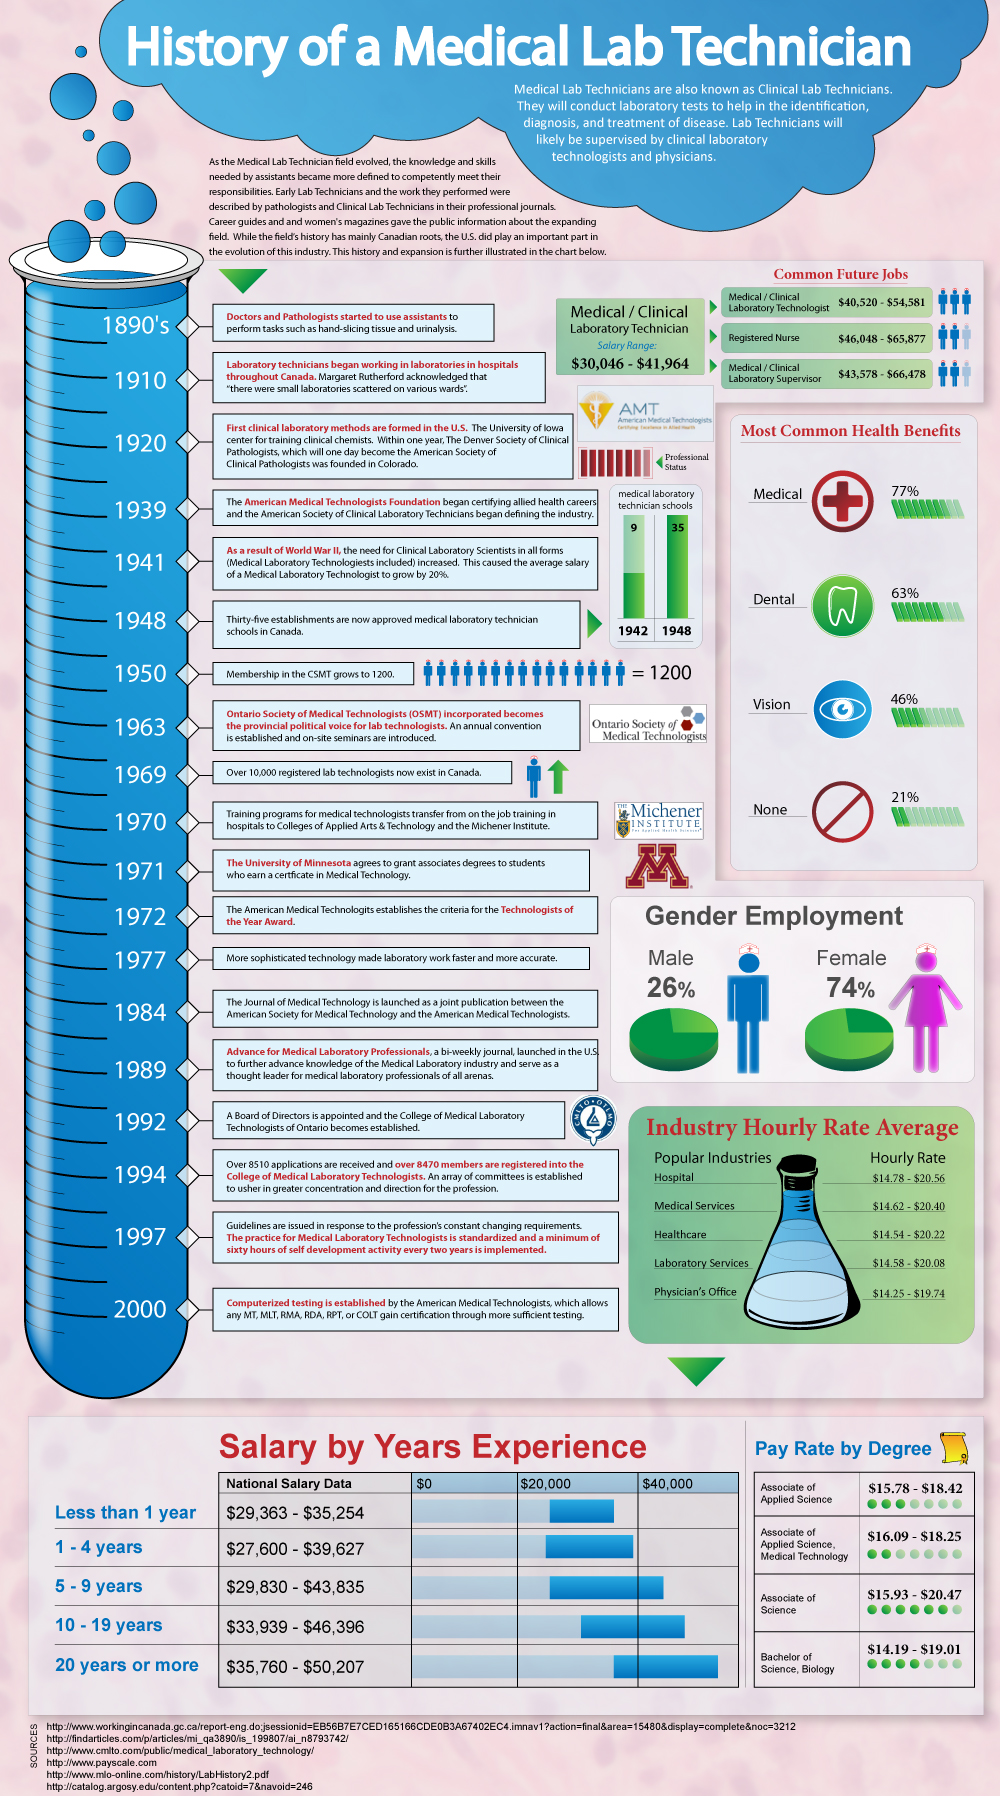 The History of a Medical Lab Technician